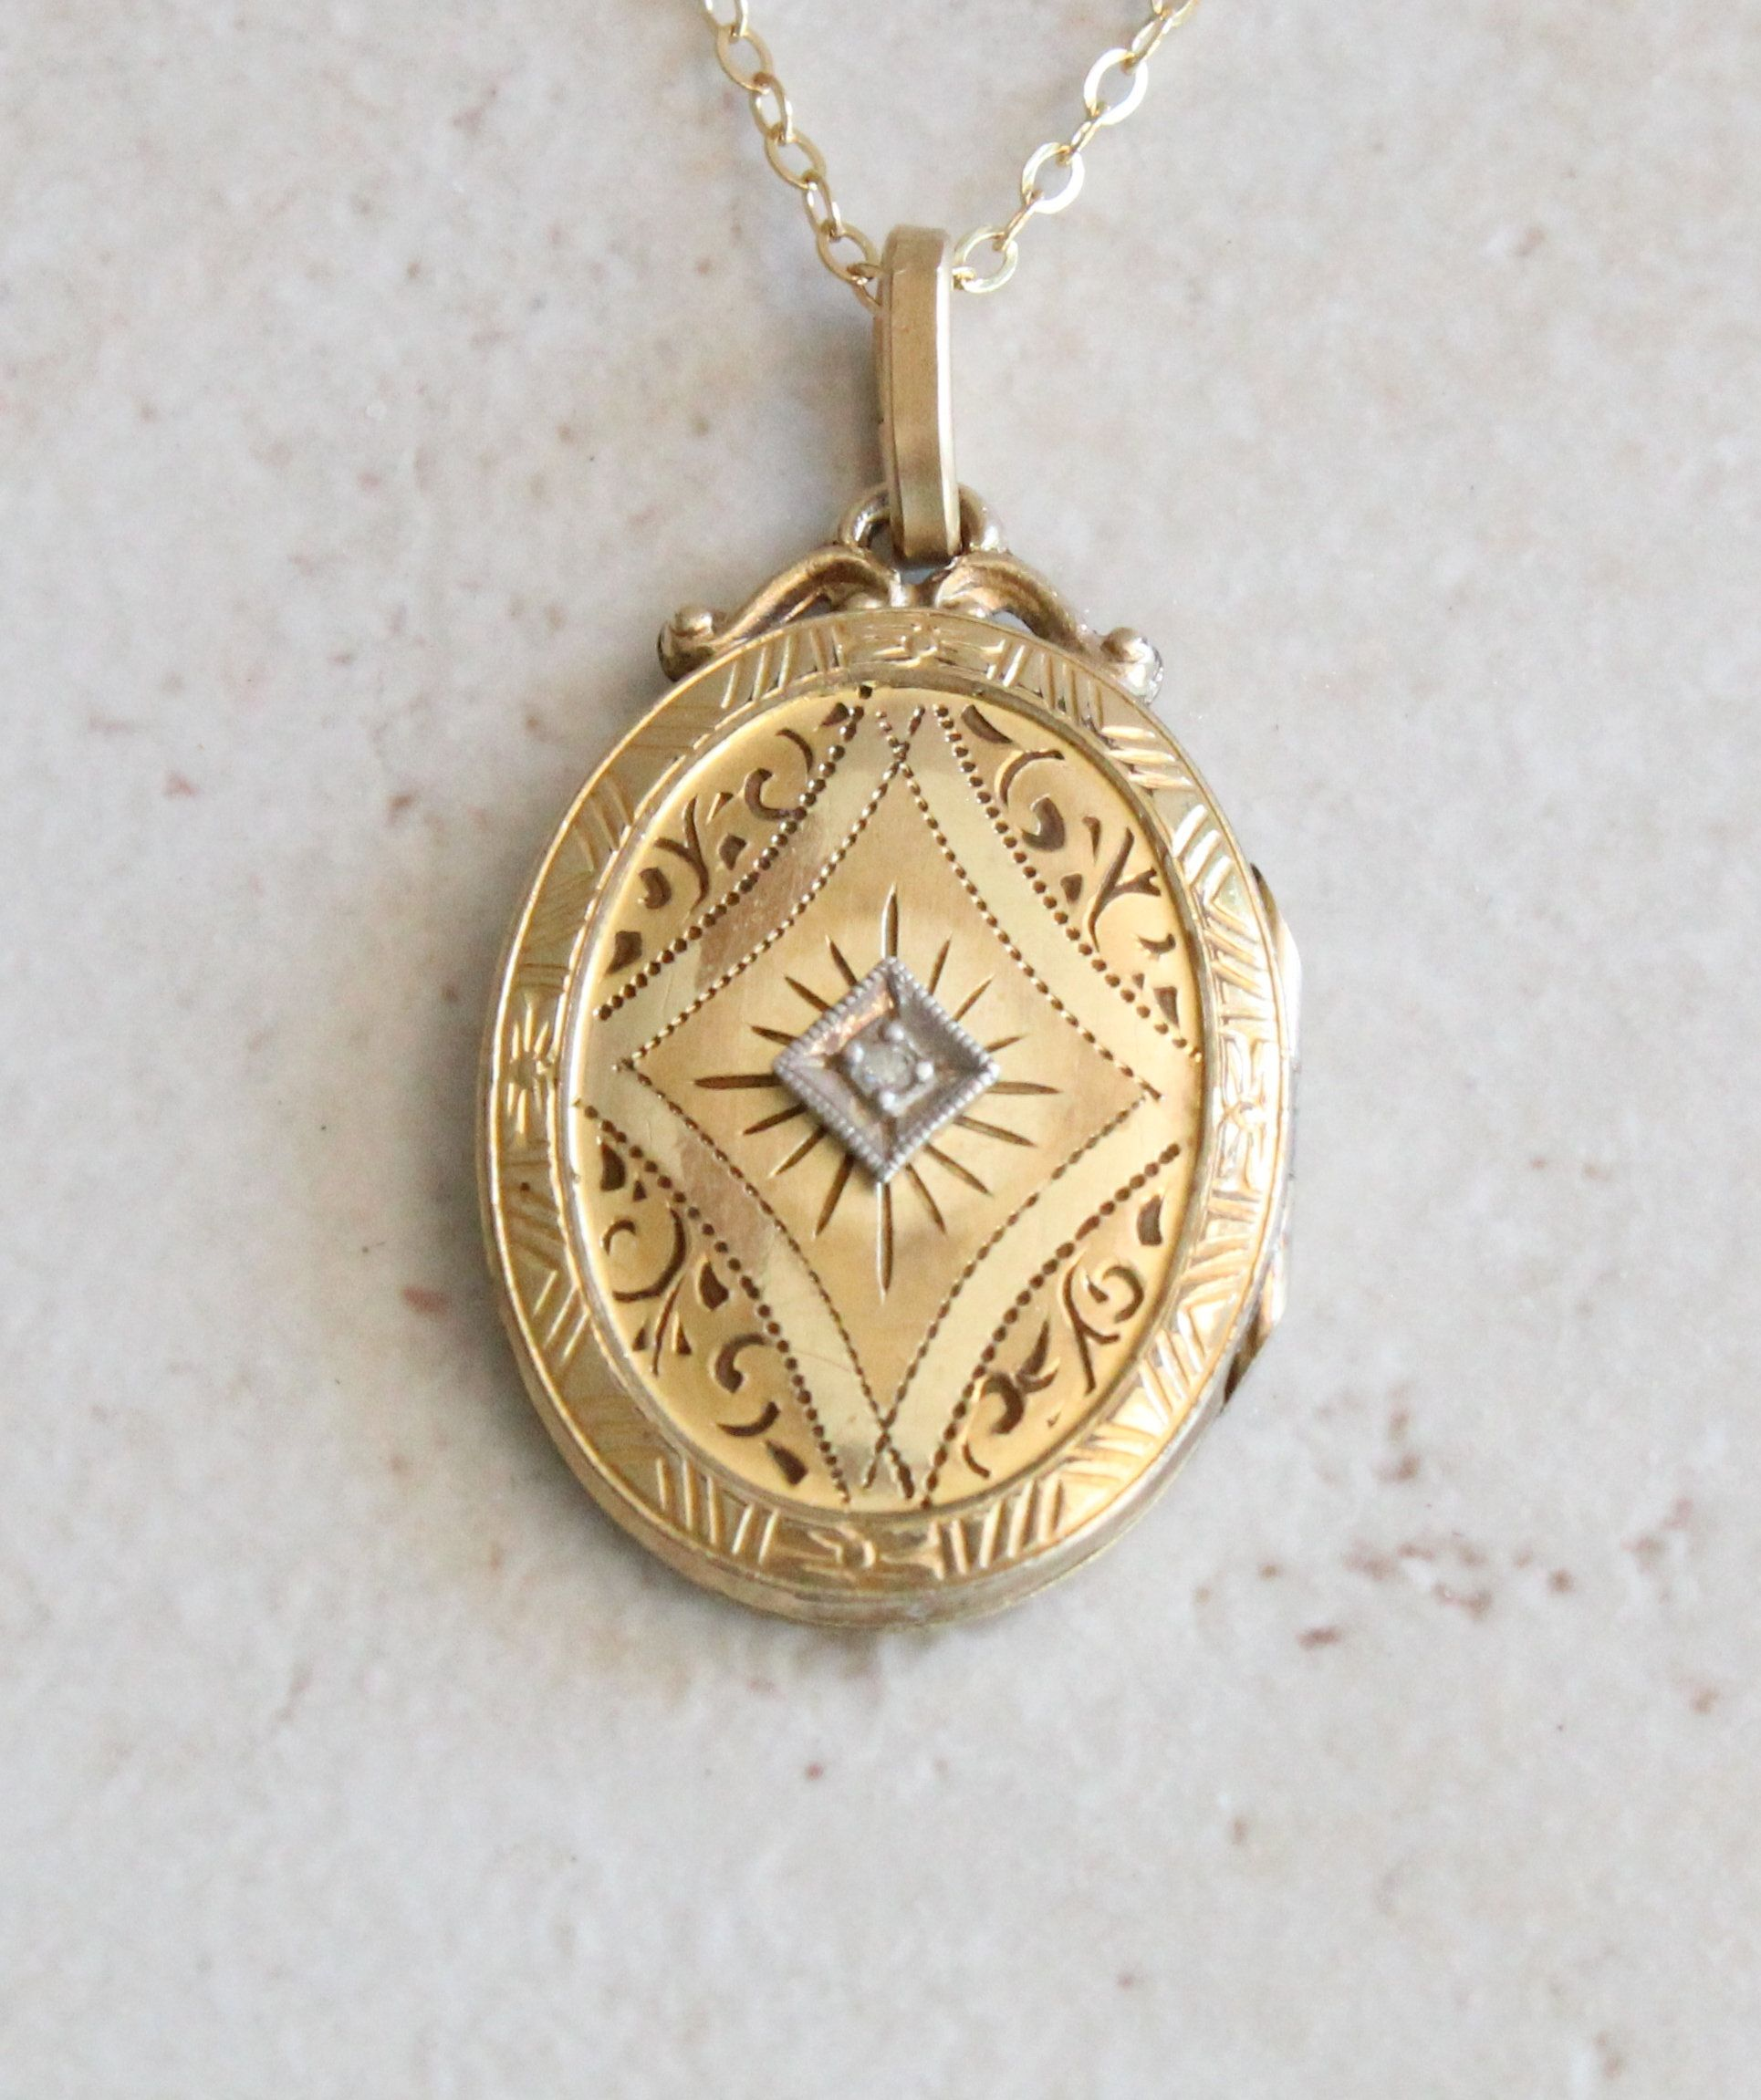 10k Gold Filled Locket With Diamond Psco Plainville Stock Co Vintage Locket 10k Gold Gold Filled